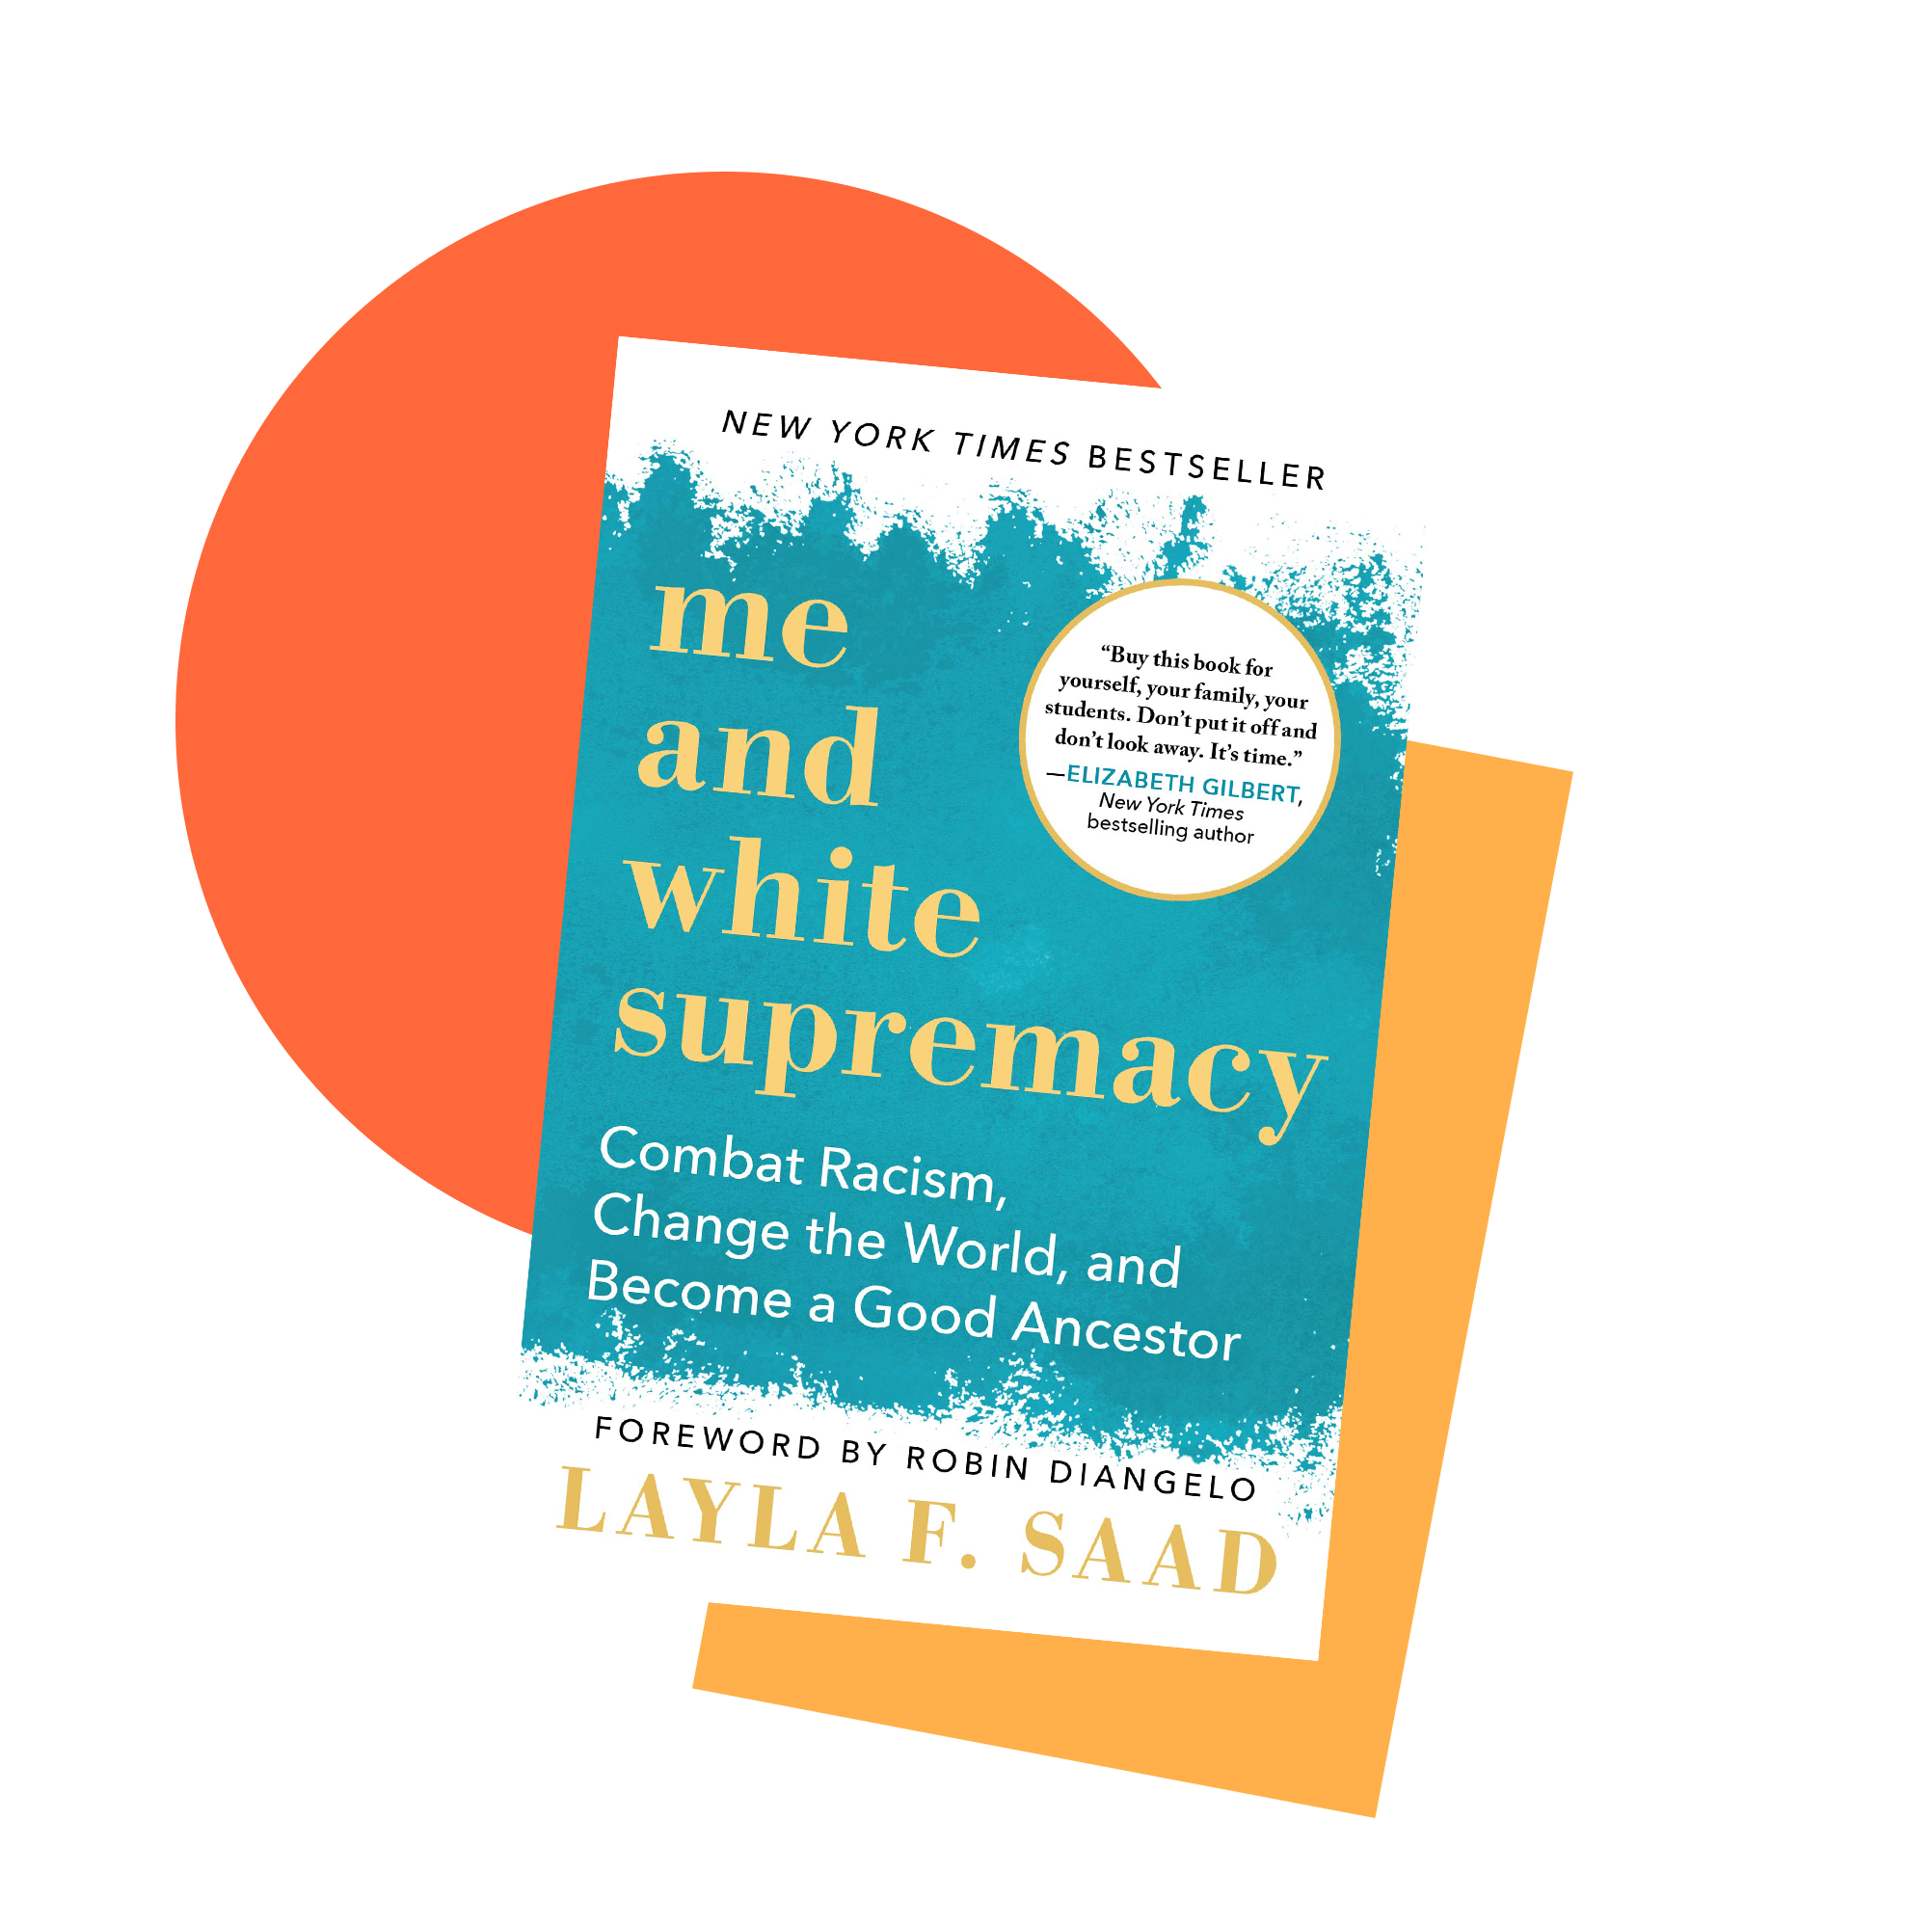 Book jacket cover for Me and White Supremacy by Layla F. Saad